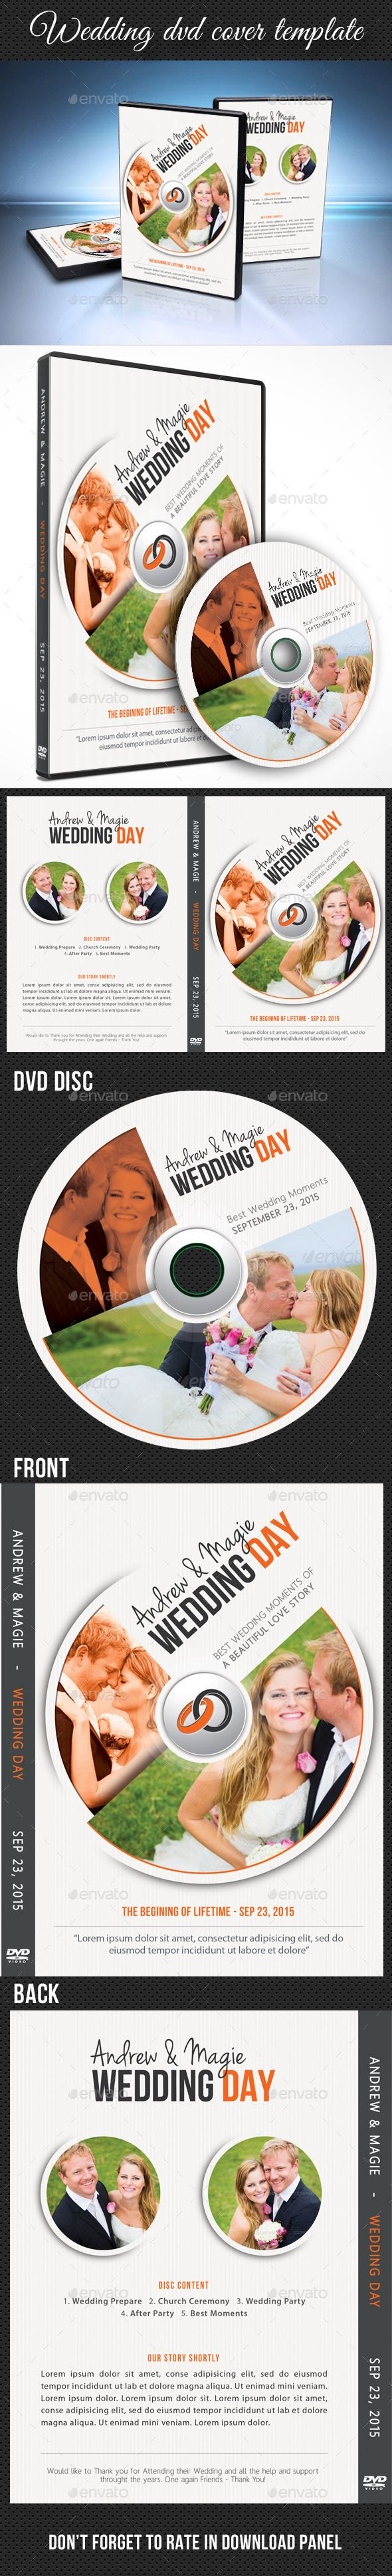 Wedding Dvd Cover Template 13 Dvd Cover Template Wedding Dvd Wedding Dvd Cover